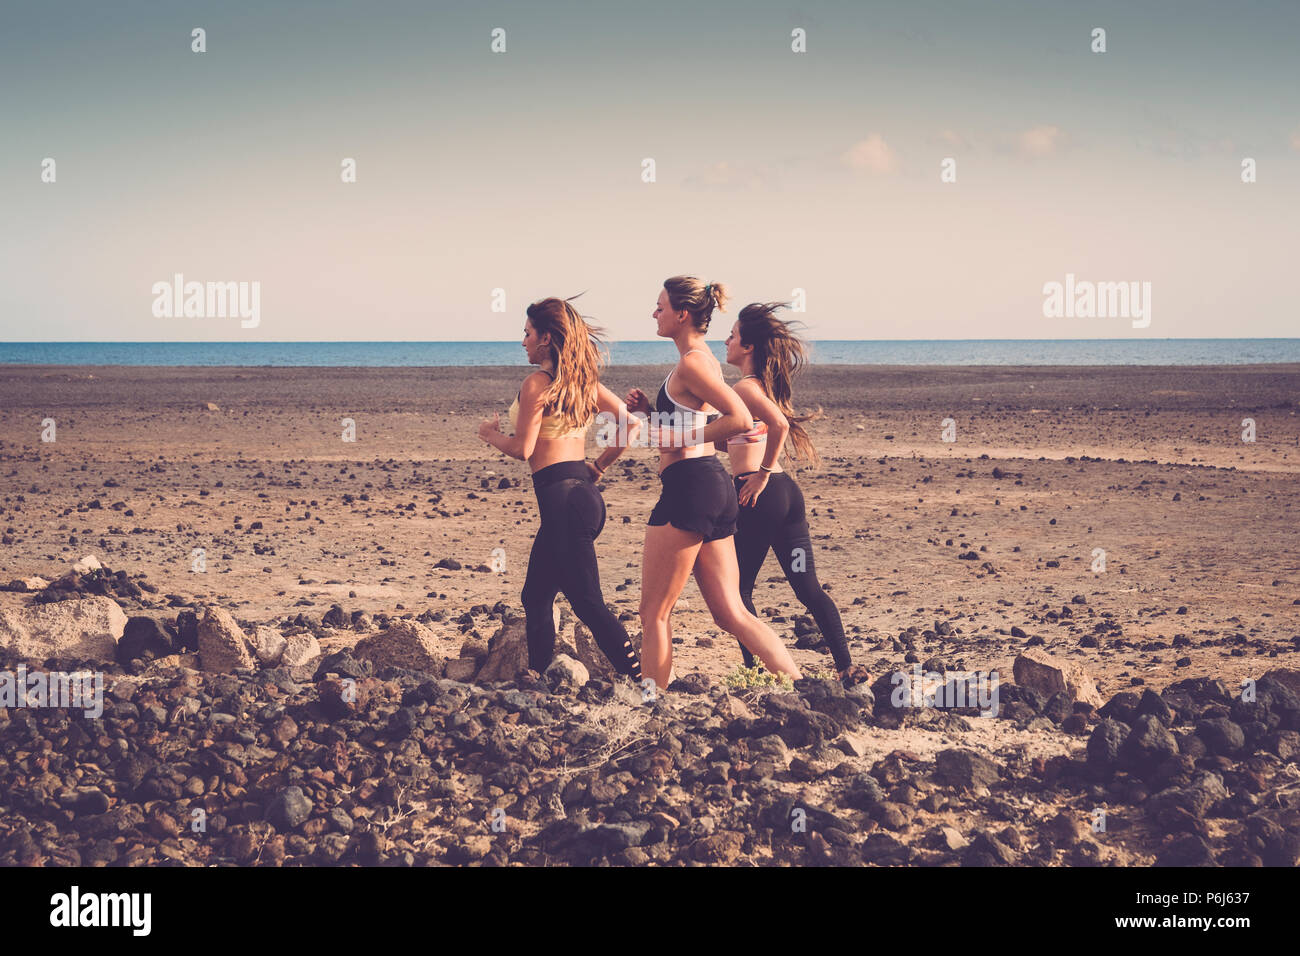 group of three young beautiful women run near the beach in outdoor nice location with blue ocean in background. Healthy people do exercises to build a - Stock Image